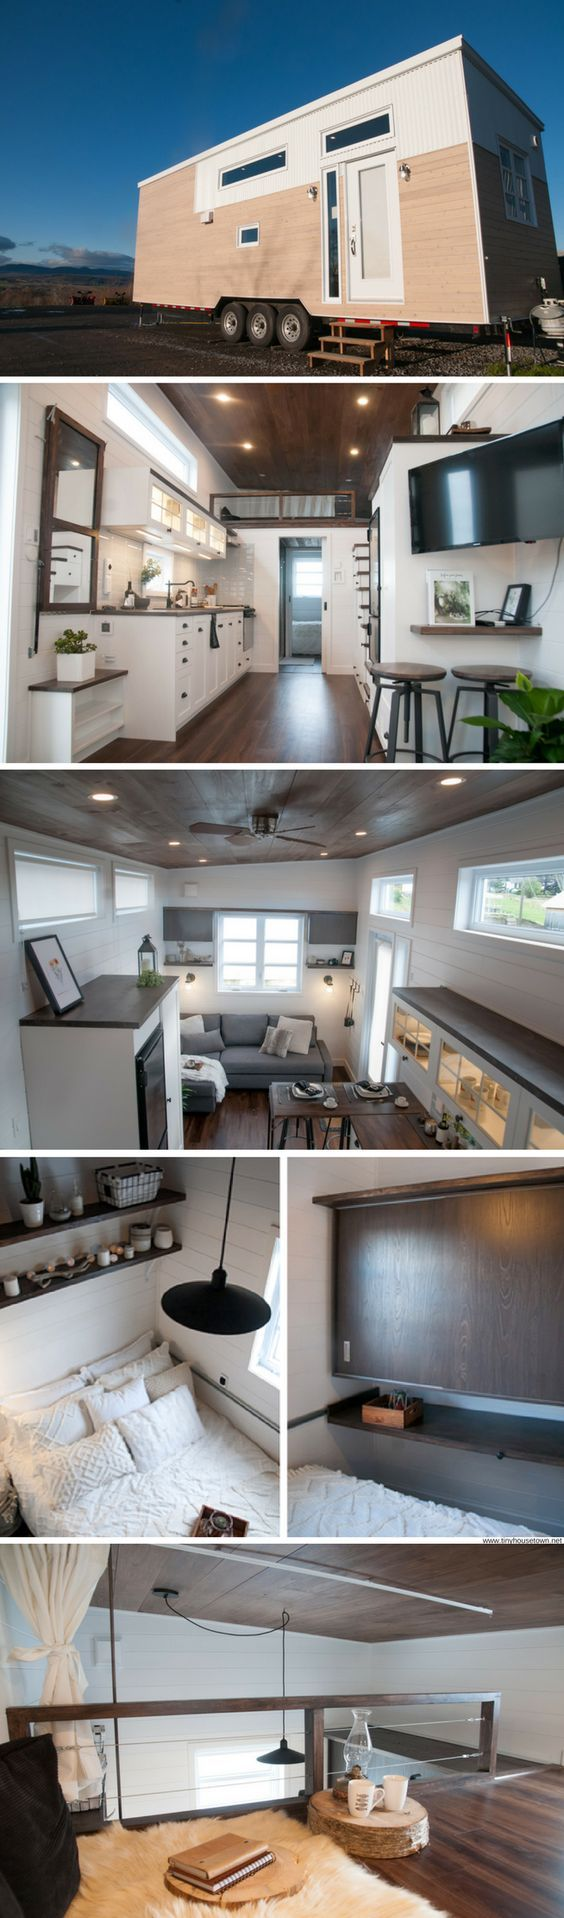 The Laurier Tiny House From Minimaliste Tiny House